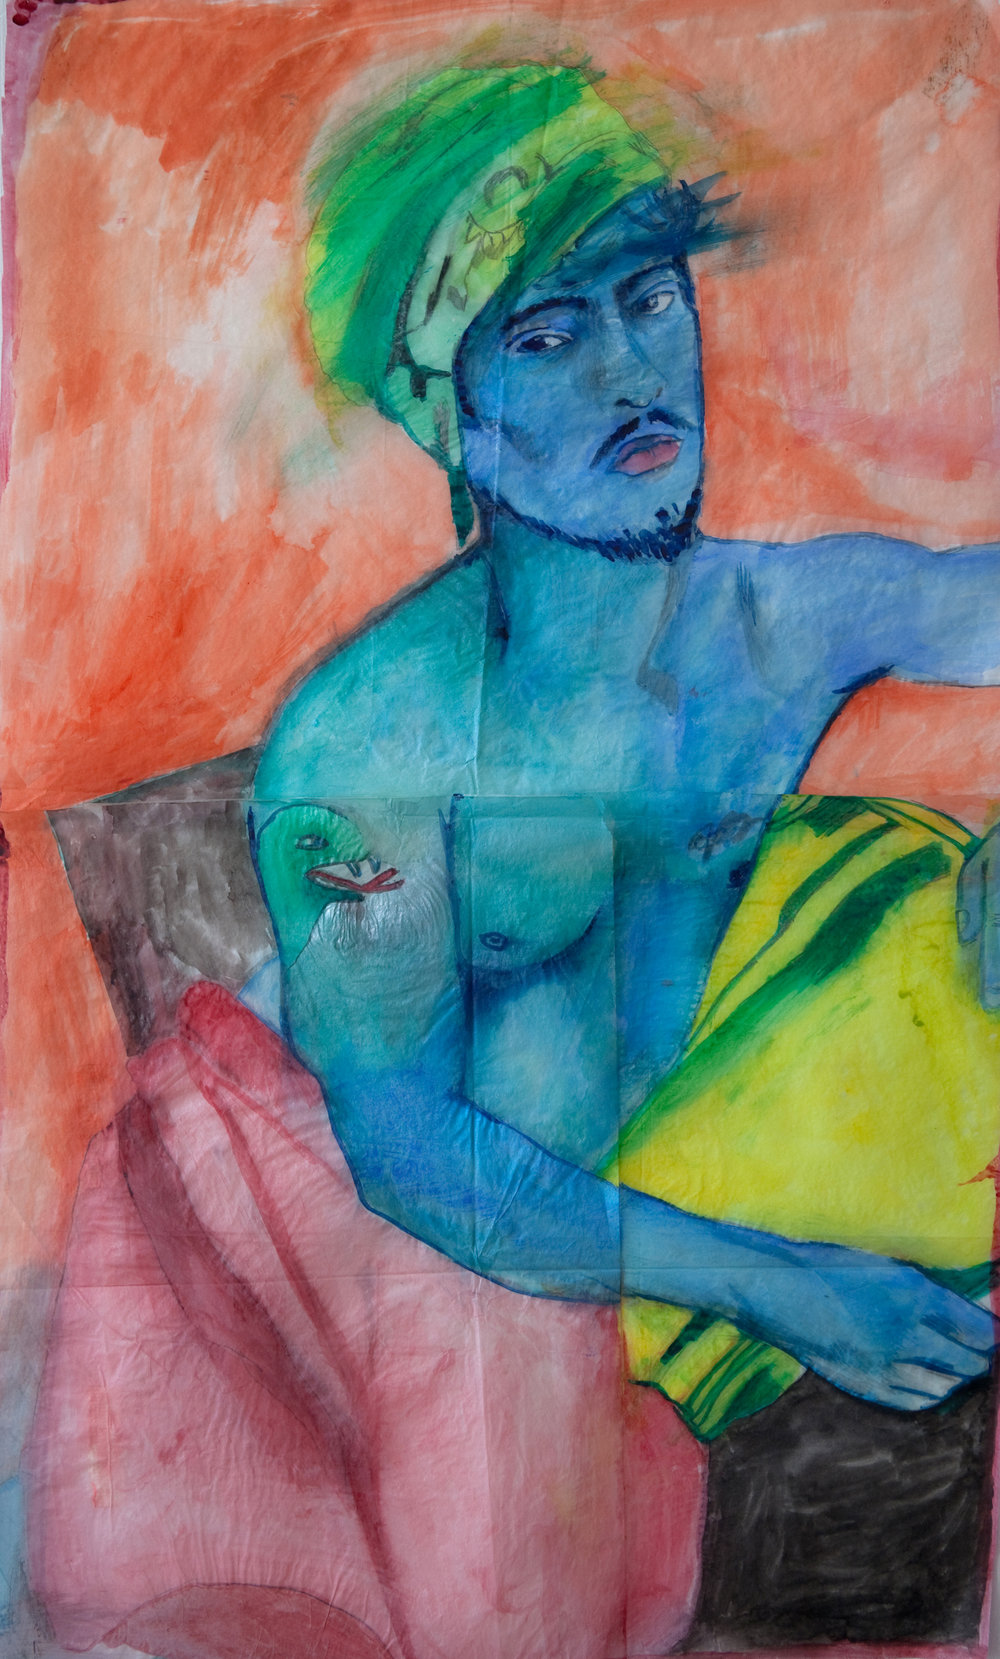 Significant Other (Kory Coons), Watercolor on Paper. 2013.